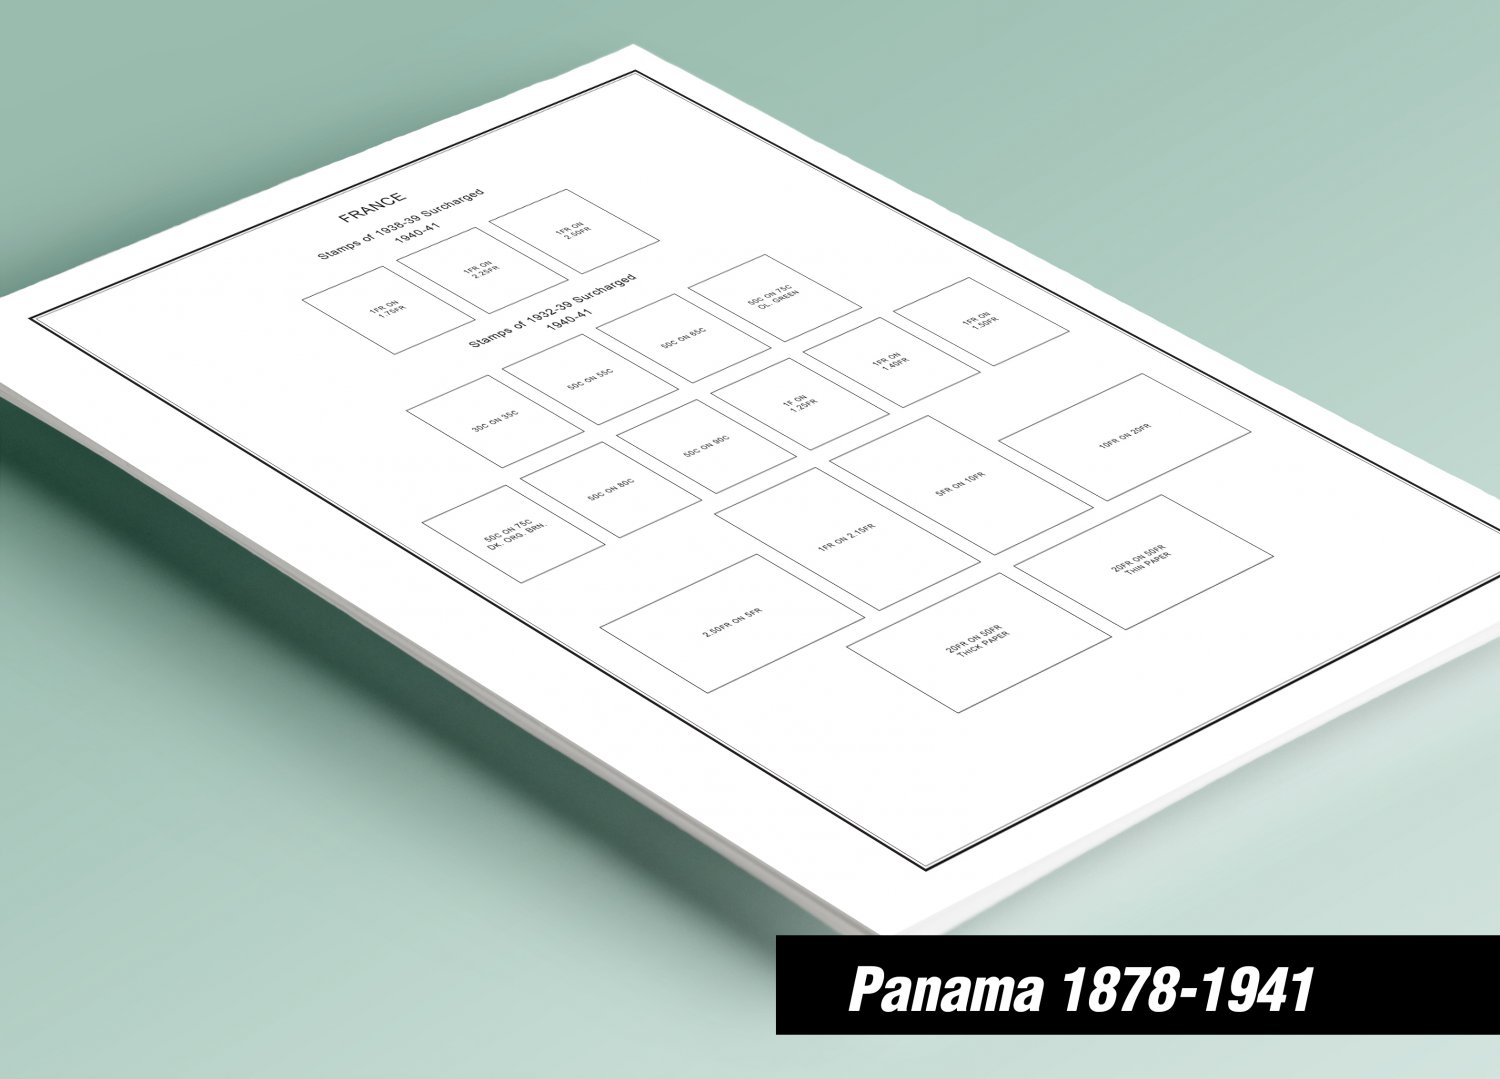 PRINTED PANAMA [CLASS.] 1878-1941 STAMP ALBUM PAGES (37 pages)